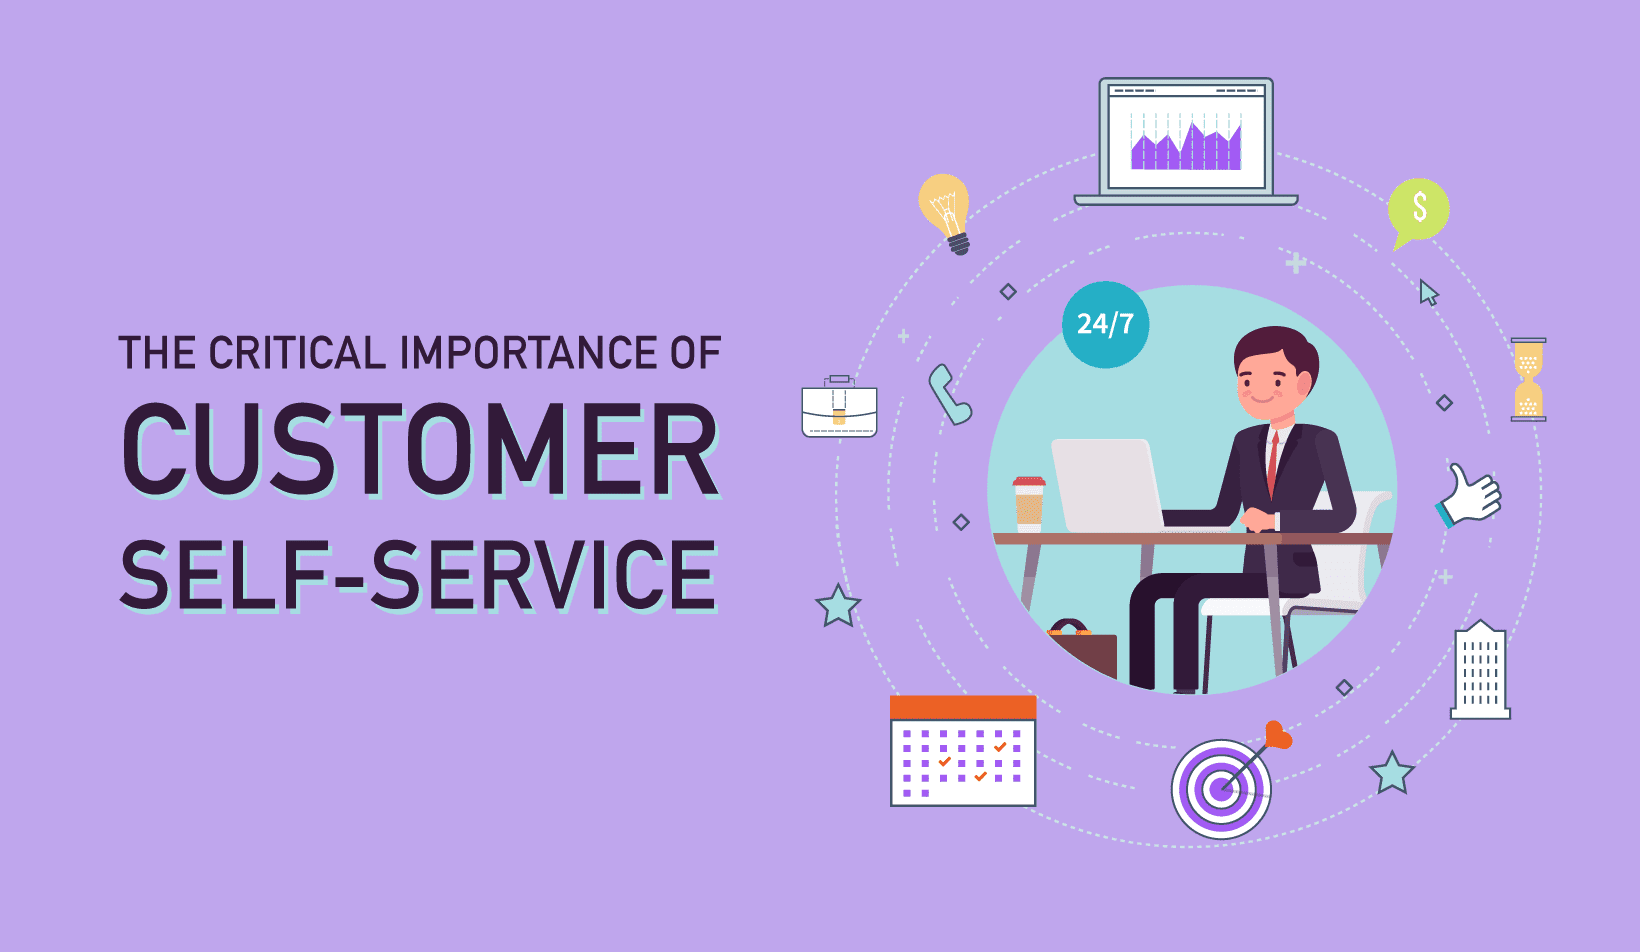 The Critical Importance of Customer Self-Service in 2018